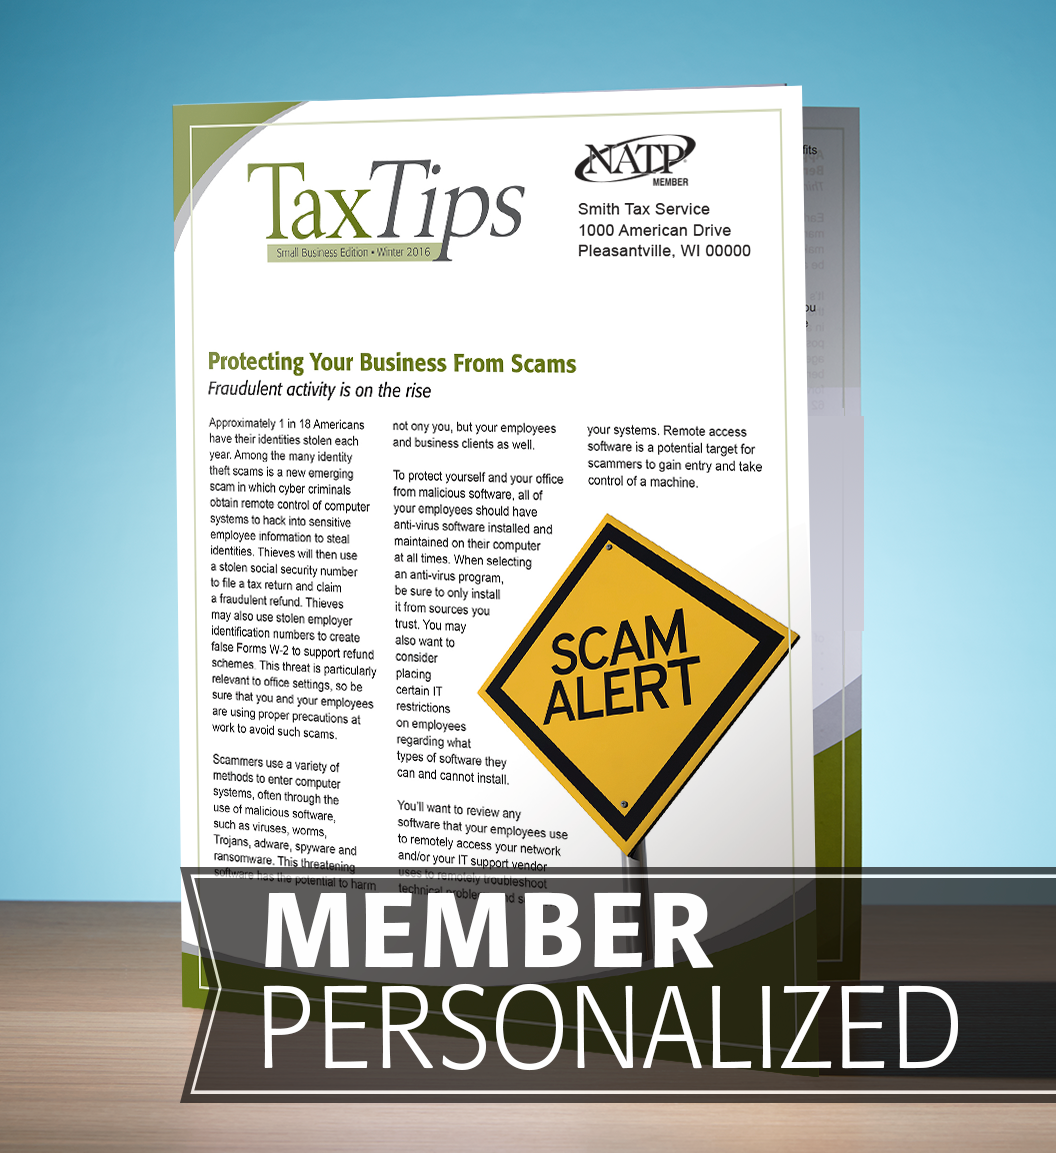 Tax Tips – Business – Tri-Fold - Personalized (Winter 2016/17) - #TTTB3635